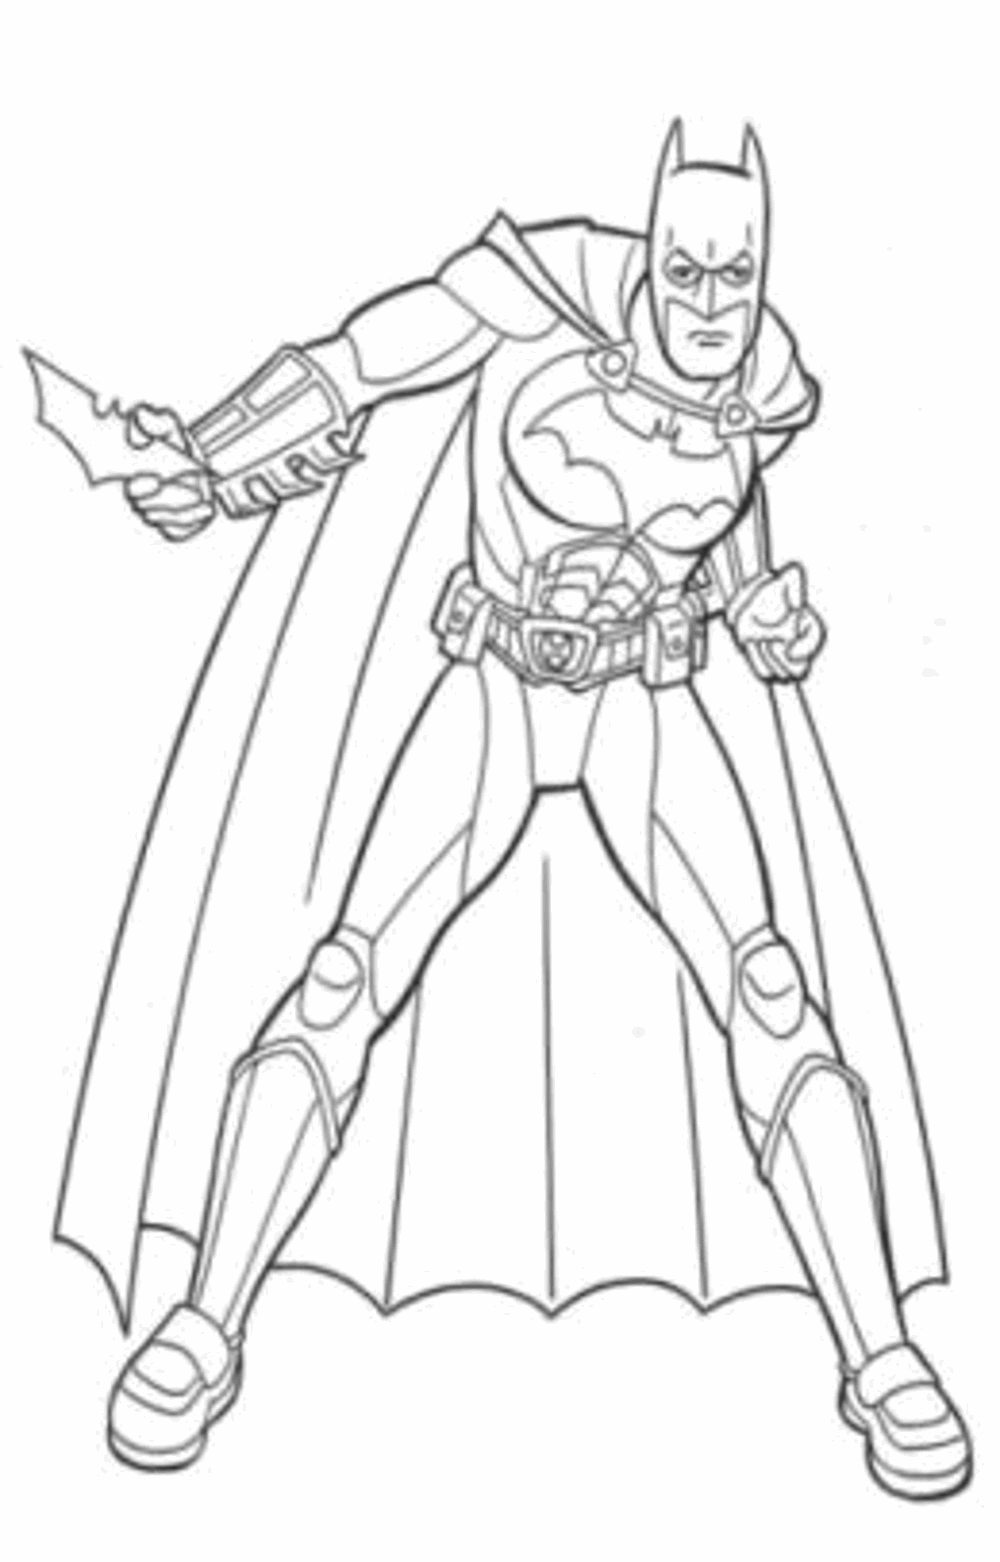 batmancoloring pages pictures of batman to color free download on clipartmag batmancoloring pages